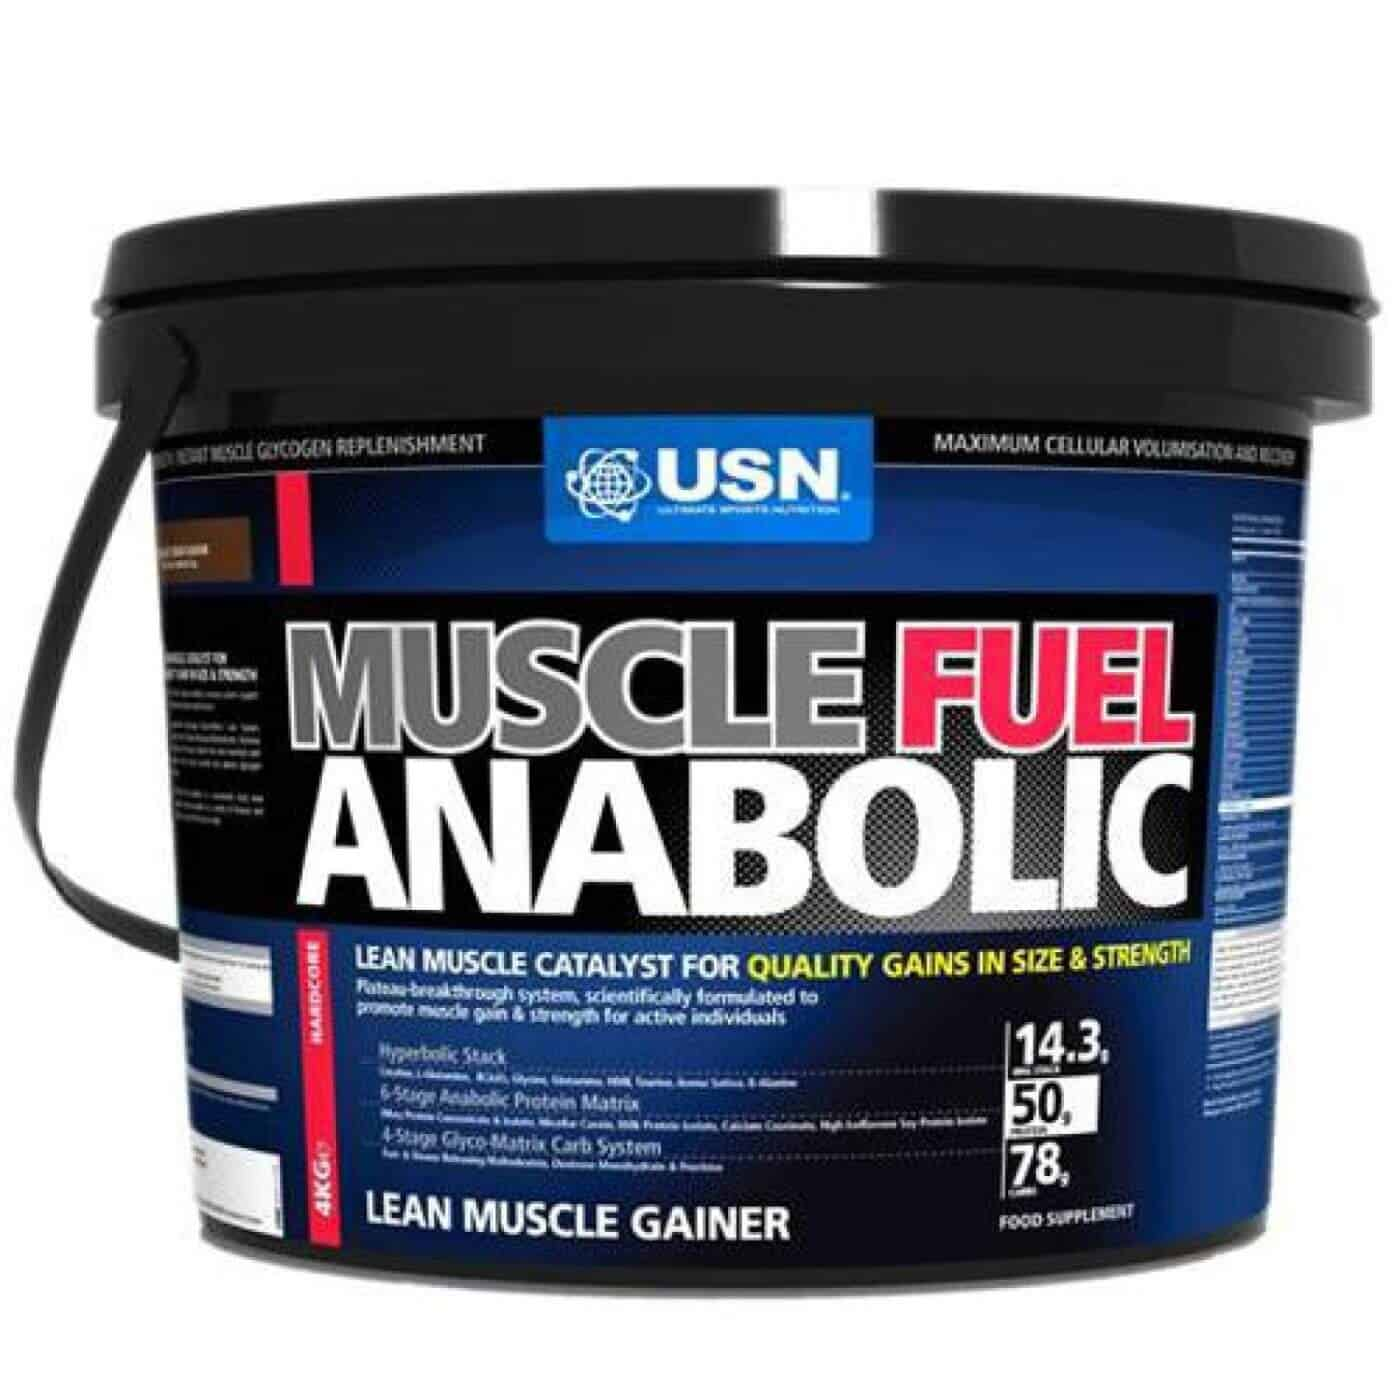 USN Muscle Fuel Anabolic Review (UPDATE: 2018) | 6 Things ...